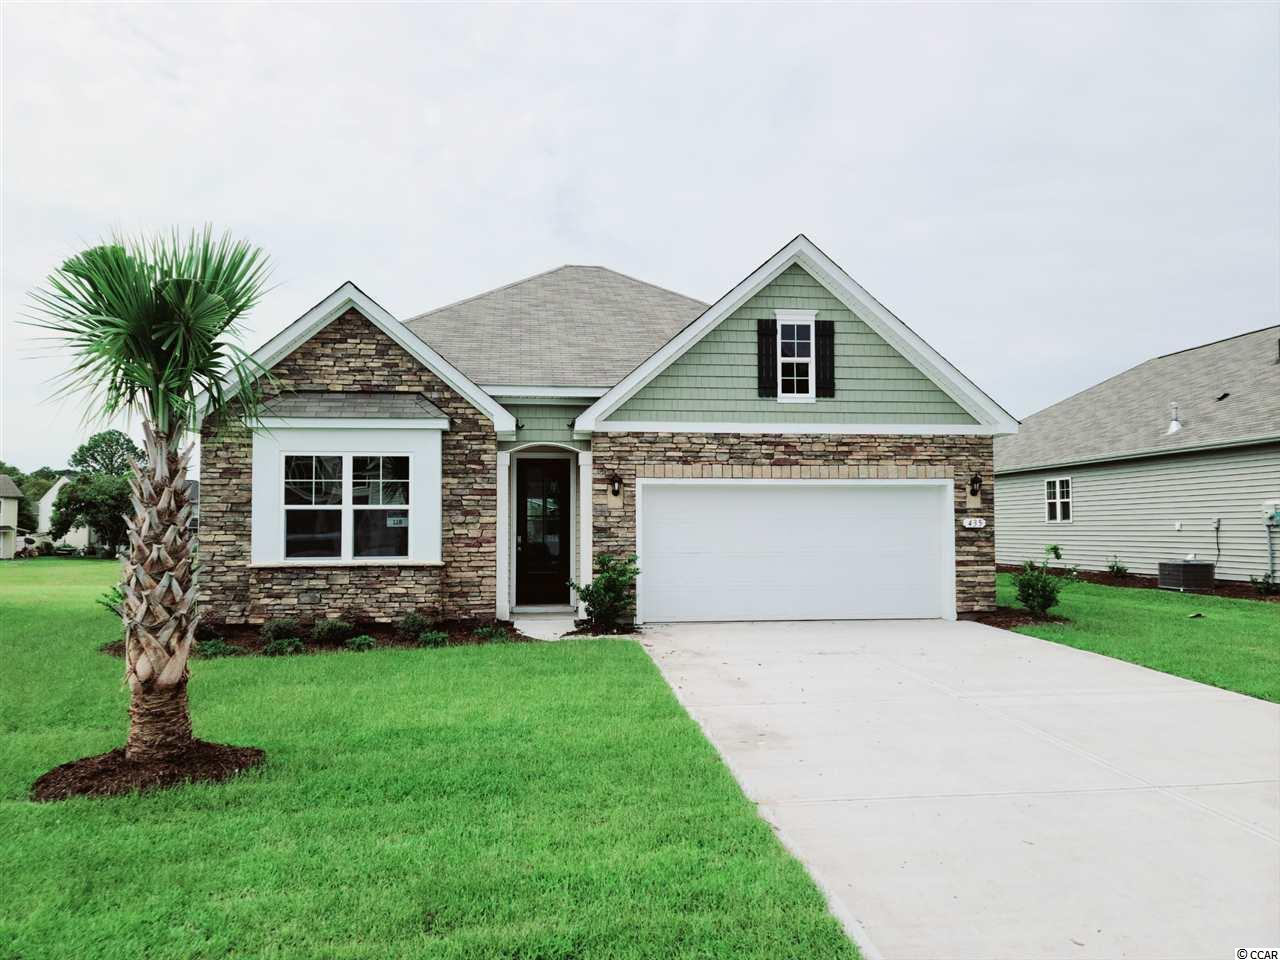 "You do not want to miss out on this home! Our Claiborne plan is the perfect  open concept, single story home with four bedrooms! The kitchen features granite countertops, an oversized island, 36"" white painted cabinets, a walk-in pantry, and stainless Whirlpool appliances. Large owner's suite tucked away at the back of the home, separated from the other bedrooms, with a double vanity and 5' shower in the master bath along with a huge walk-in closet and separate linen closet. Beautiful laminate wood floors flow throughout the foyer, kitchen, living, and dining rooms with tile in both bathrooms and the laundry room. Spacious covered rear porch adds additional outdoor living space with water views! This is America's Smart Home- ask an agent today about our industry leading smart home package that is included in each of our homes. The Retreat at Ocean Commons offers proximity to Surfside Beach, Murrells Inlet, and all the shopping, dining, and entertainment in the nearby Market Commons. Natural gas, golf cart friendly community that is only 1 mile to the beach! Come see our furnished model home of this same floorplan! *Photos and virtual tour are of a similar Claiborne home. (Home and community information, including pricing, included features, terms, availability and amenities, are subject to change prior to sale at any time without notice or obligation. Square footages are approximate. Pictures, photographs, colors, features, and sizes are for illustration purposes only and will vary from the homes as built. Equal housing opportunity builder.)"